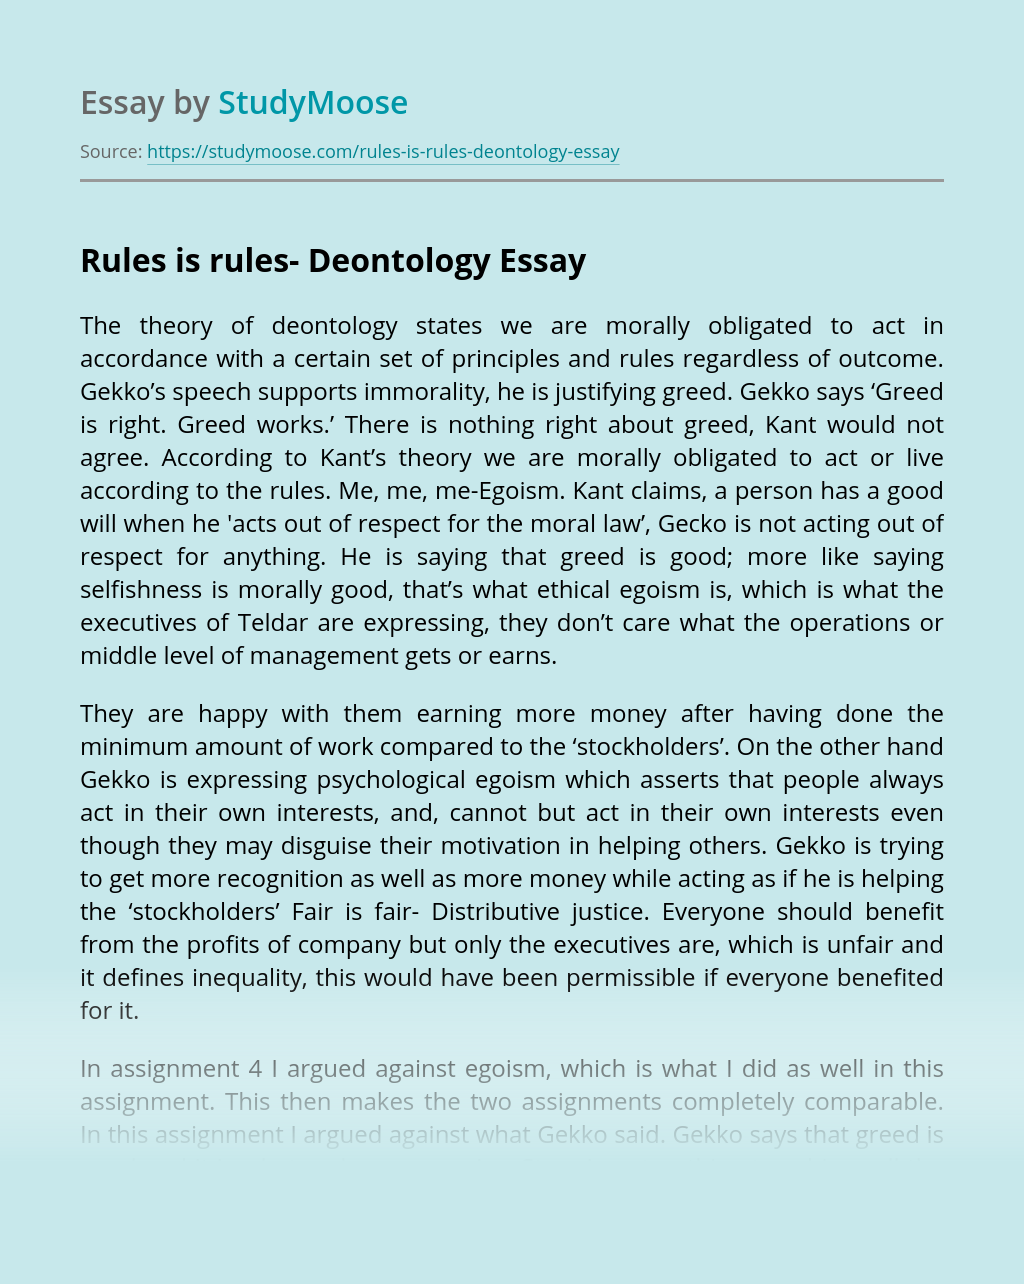 Rules is rules- Deontology